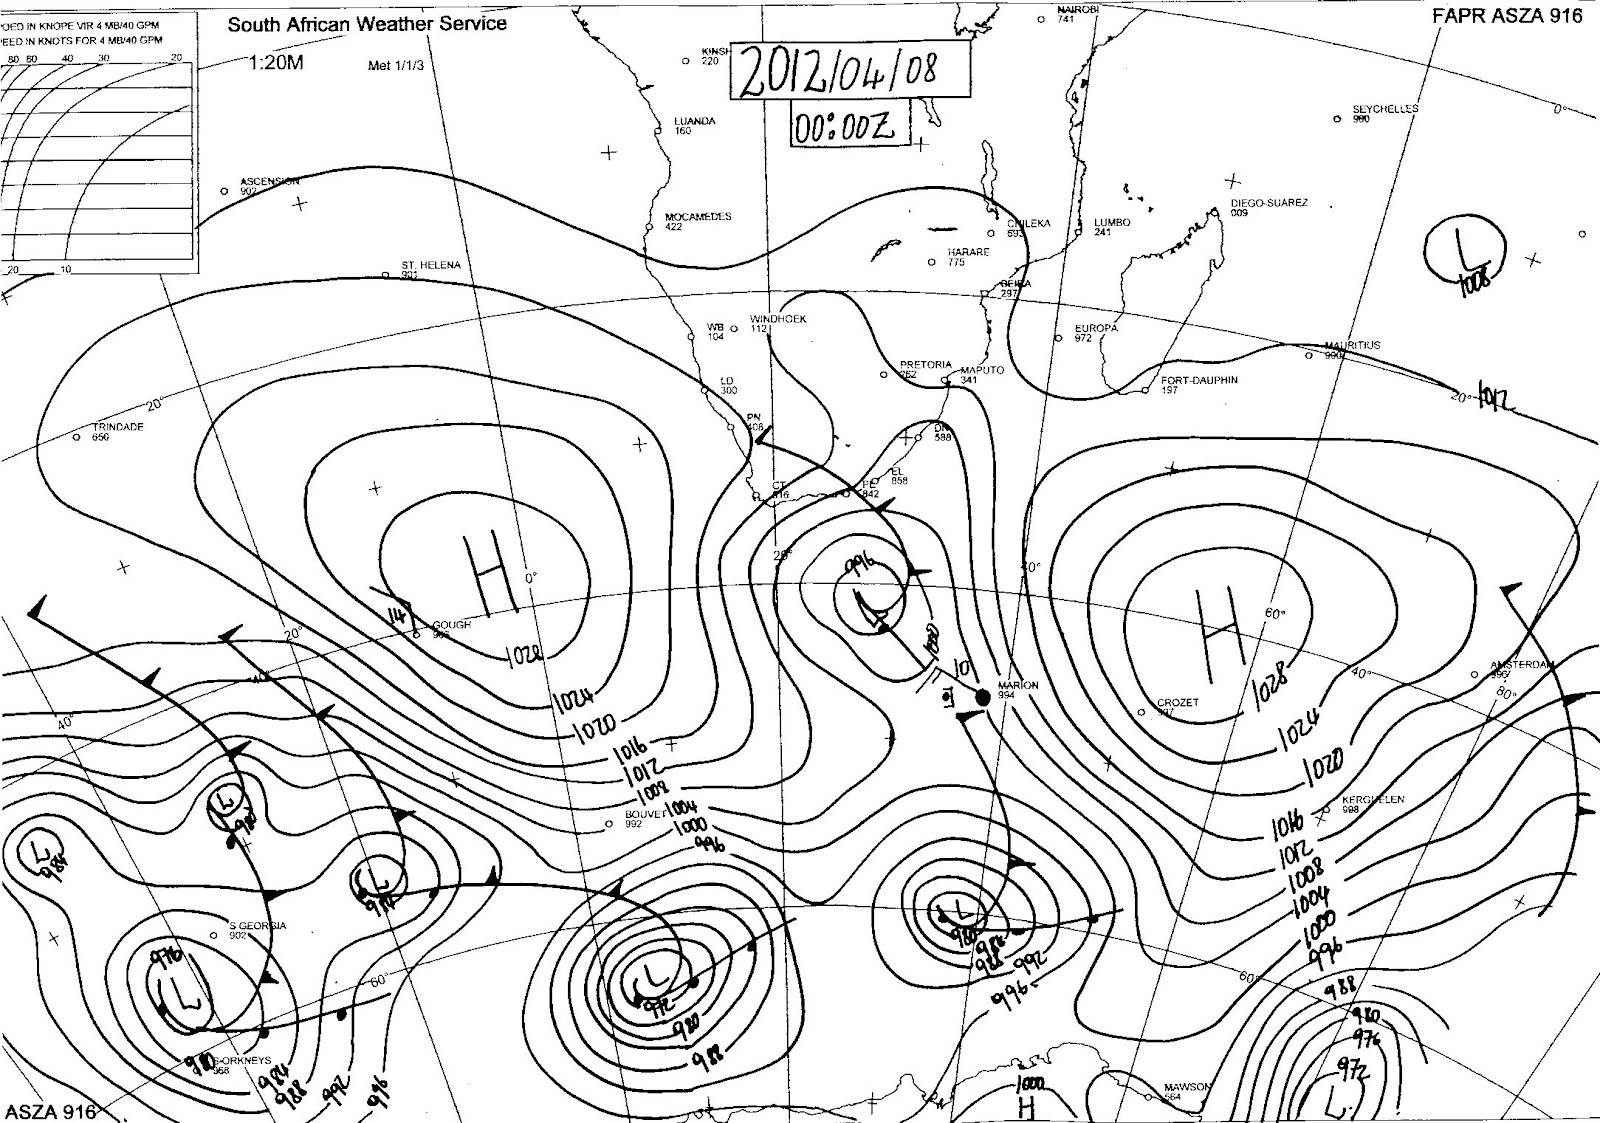 how can synoptic weather maps help us forecast weather patterns